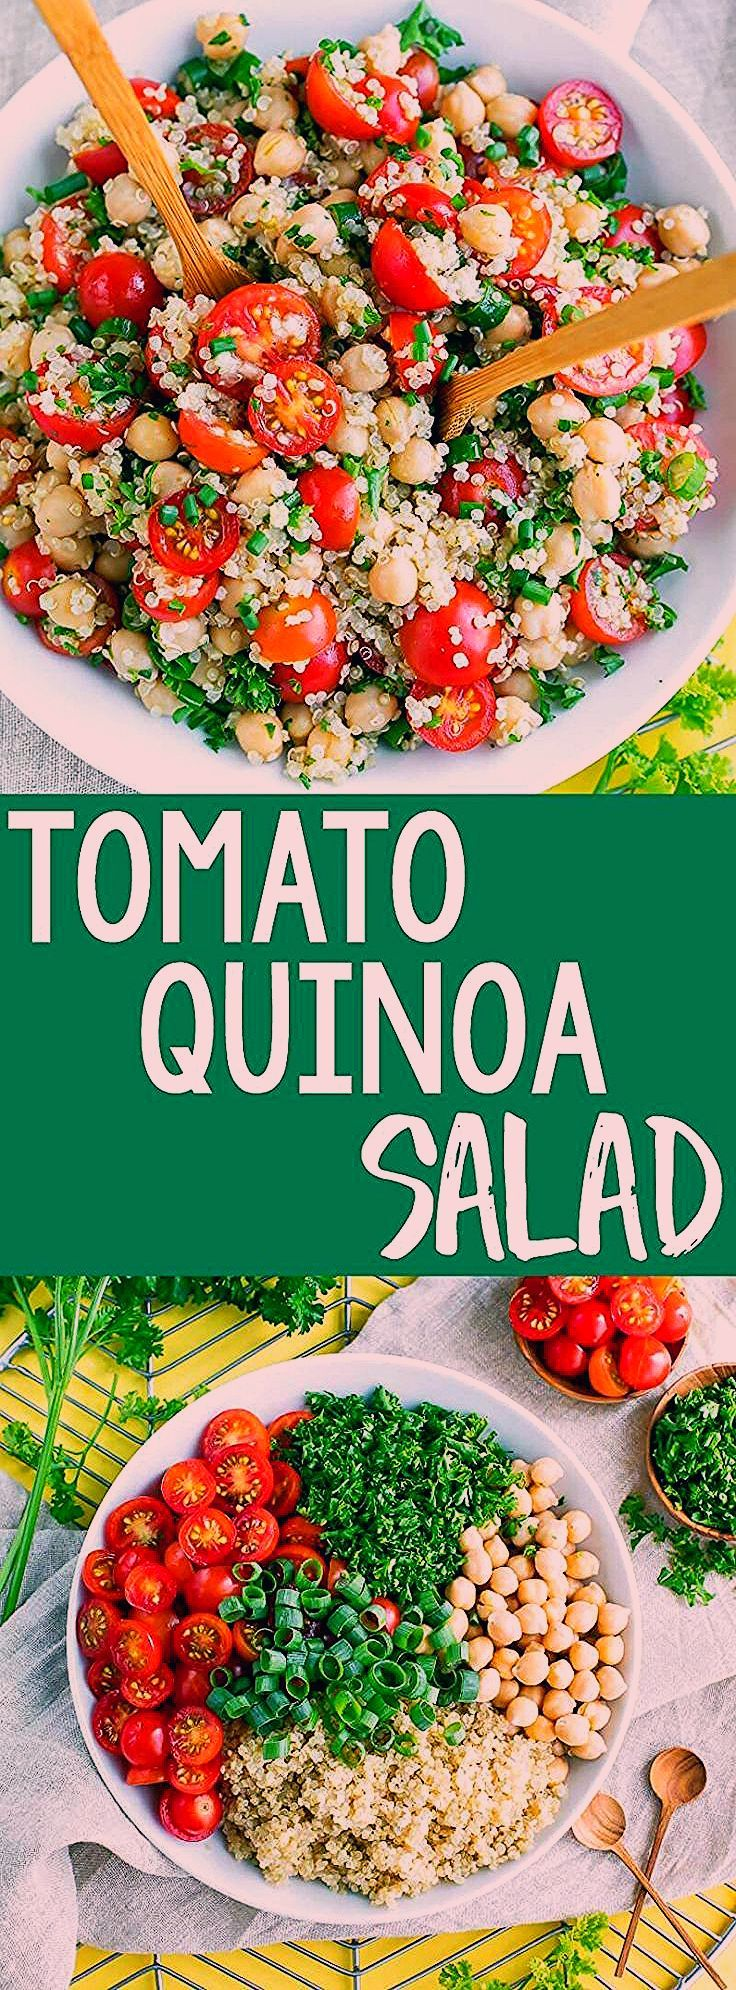 It's time to add another tasty quinoa recipe to our meal prep game! This Tomato Quinoa Salad is fas